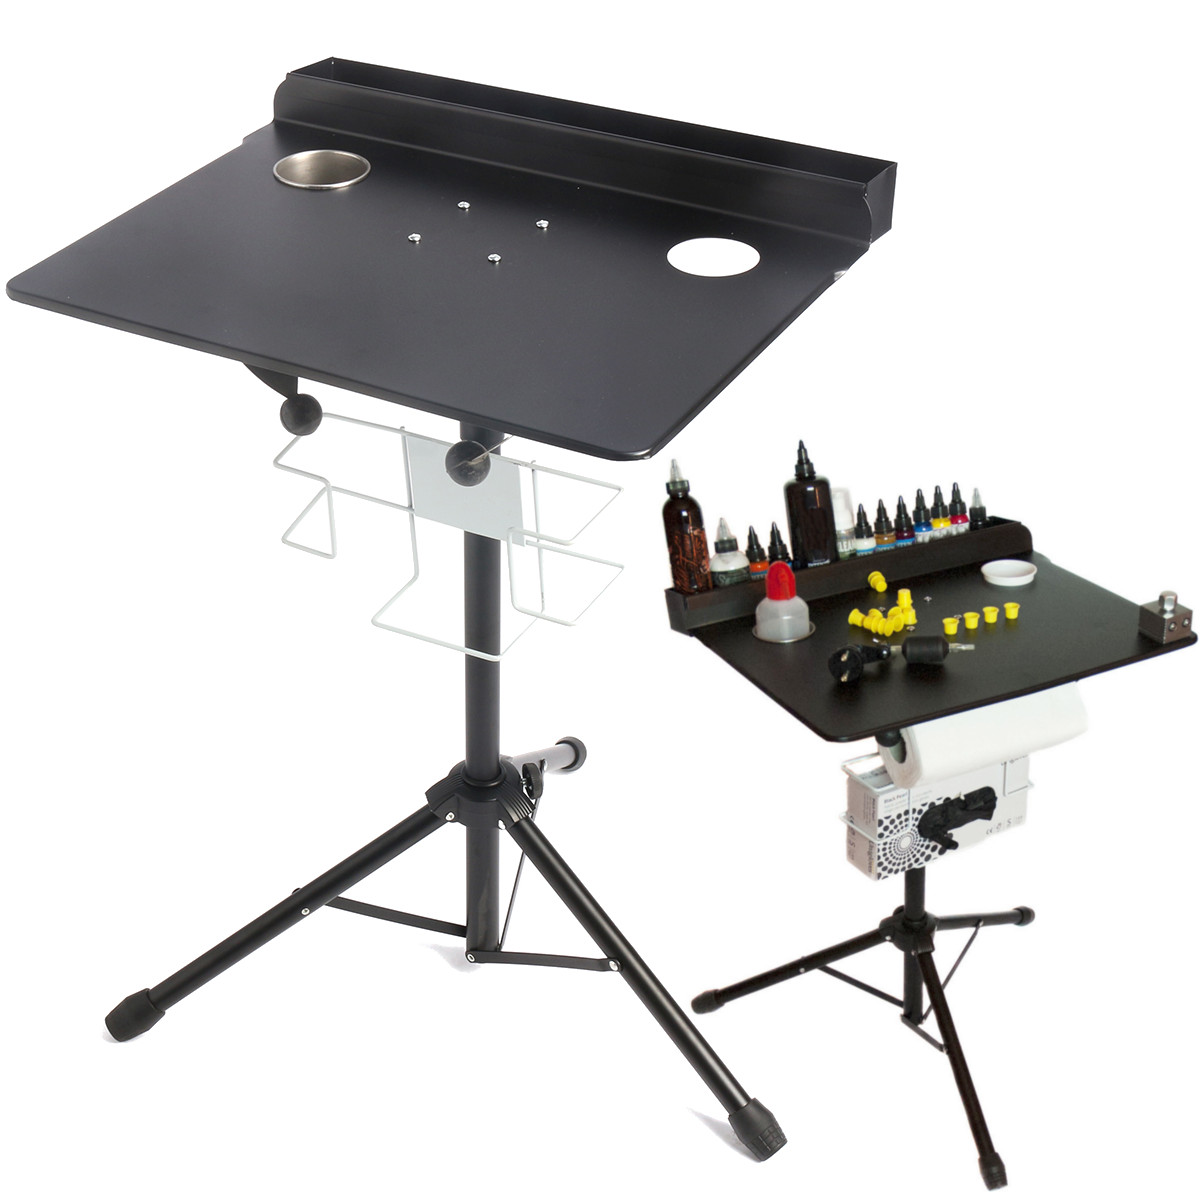 Adjustable Tattoo Work Desk Table Compact Stand Professional Tattoo Station Body Art Tattooing Supply Permanent Makeup Equipment